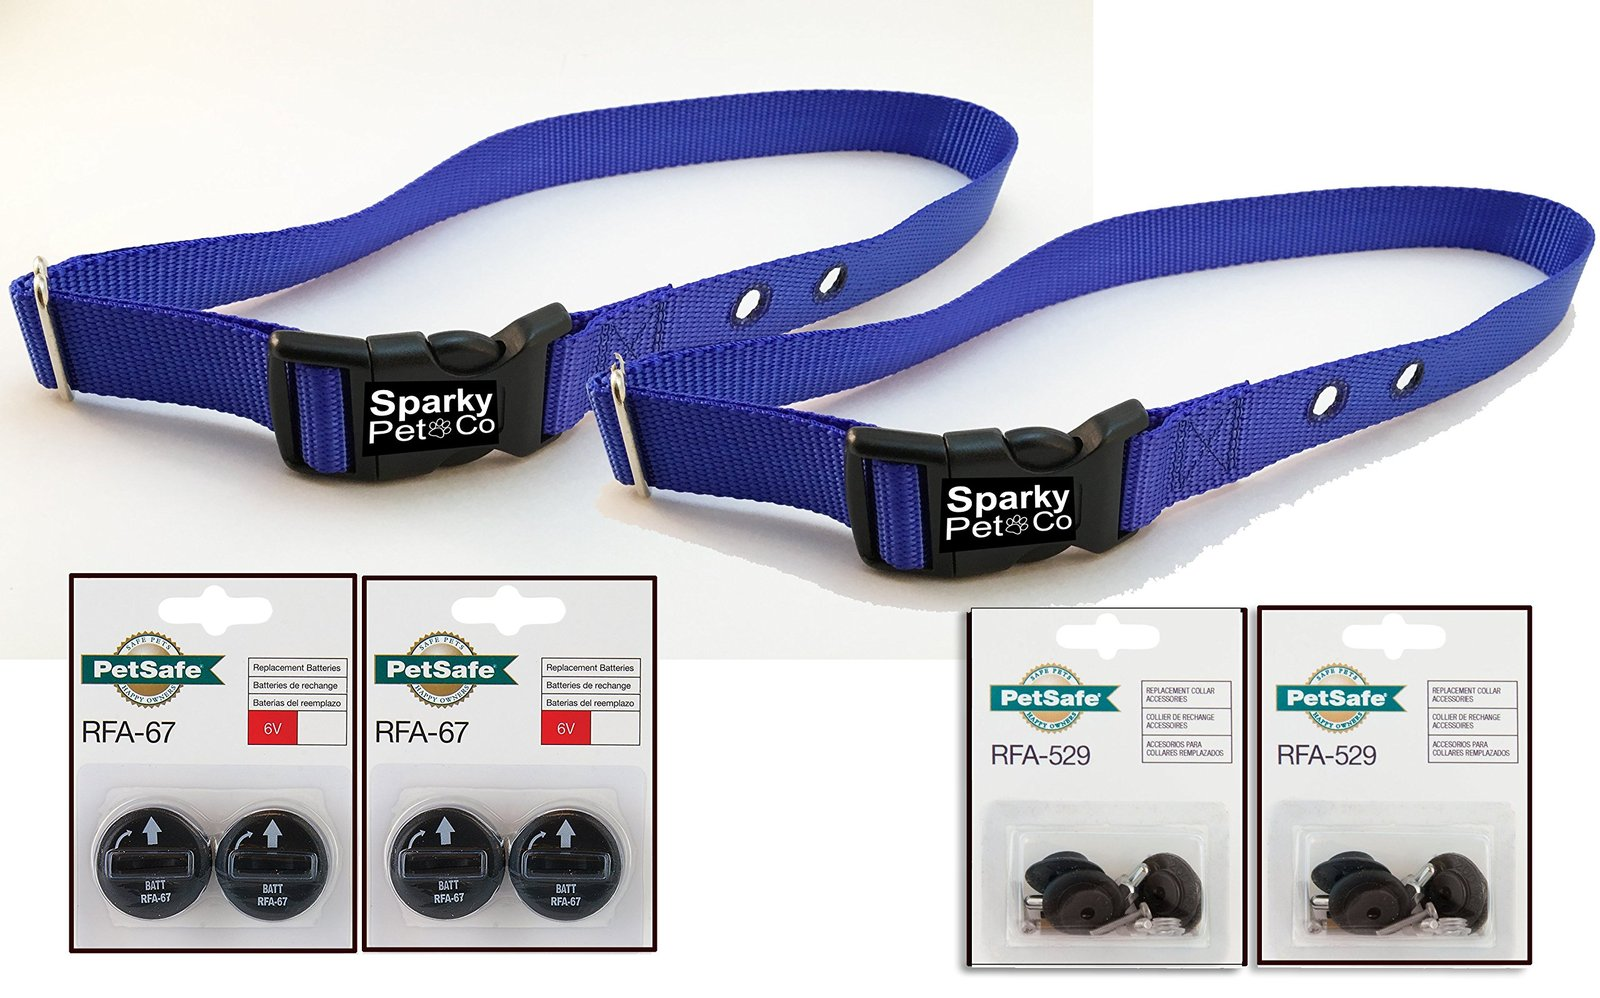 "Sparky PetCo PetSafe Compatible (2) RFA-41 3/4"" Navy Blue Color Dog Replaceme..."